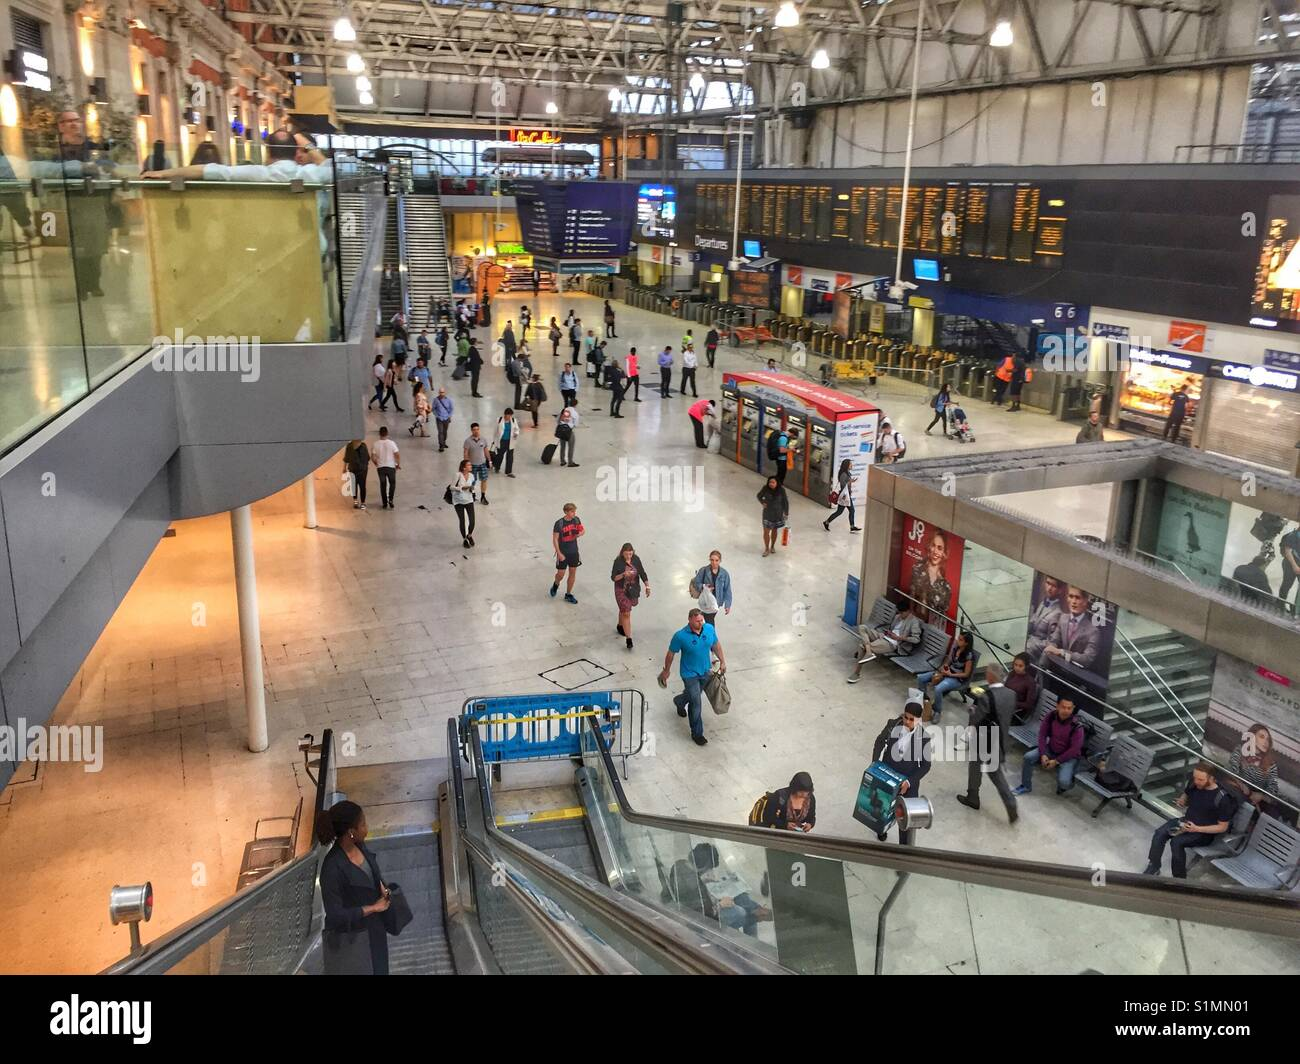 Commuters are seen at Waterloo Station as refurbishment works at the station continue and causes disruption to services, - Stock Image